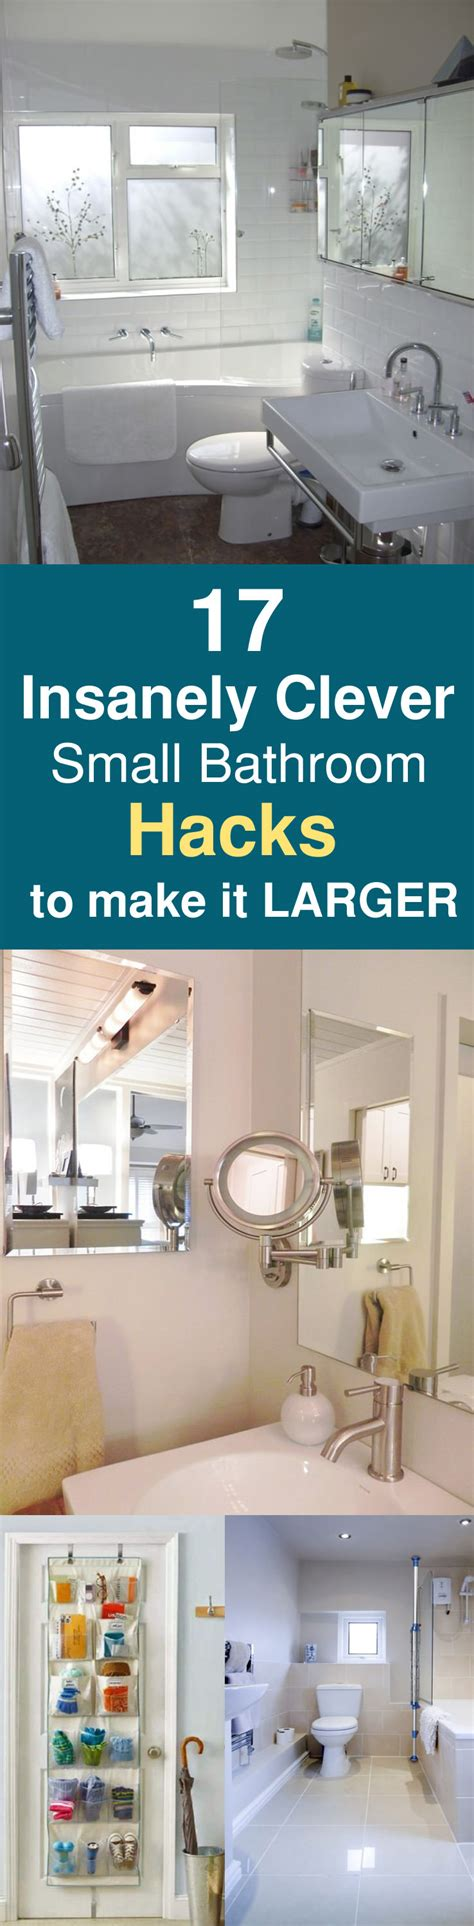 small bathroom hacks 17 insanely clever small bathroom hacks to make it larger